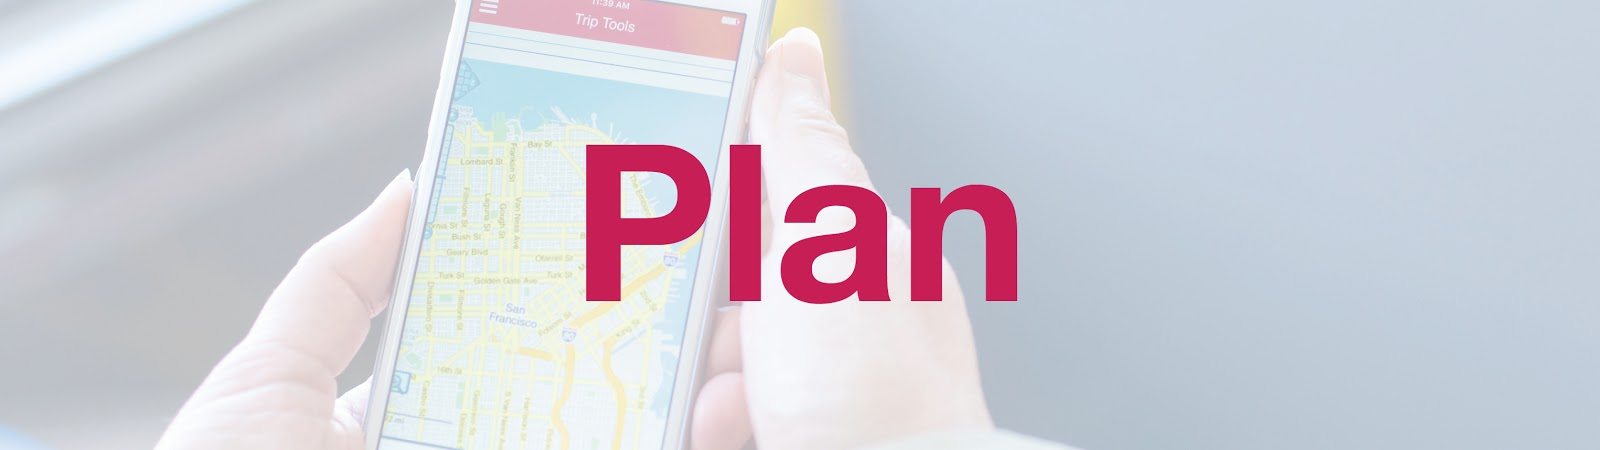 Plan (Image: Hands holding a smartphone with a map open on the screen.)